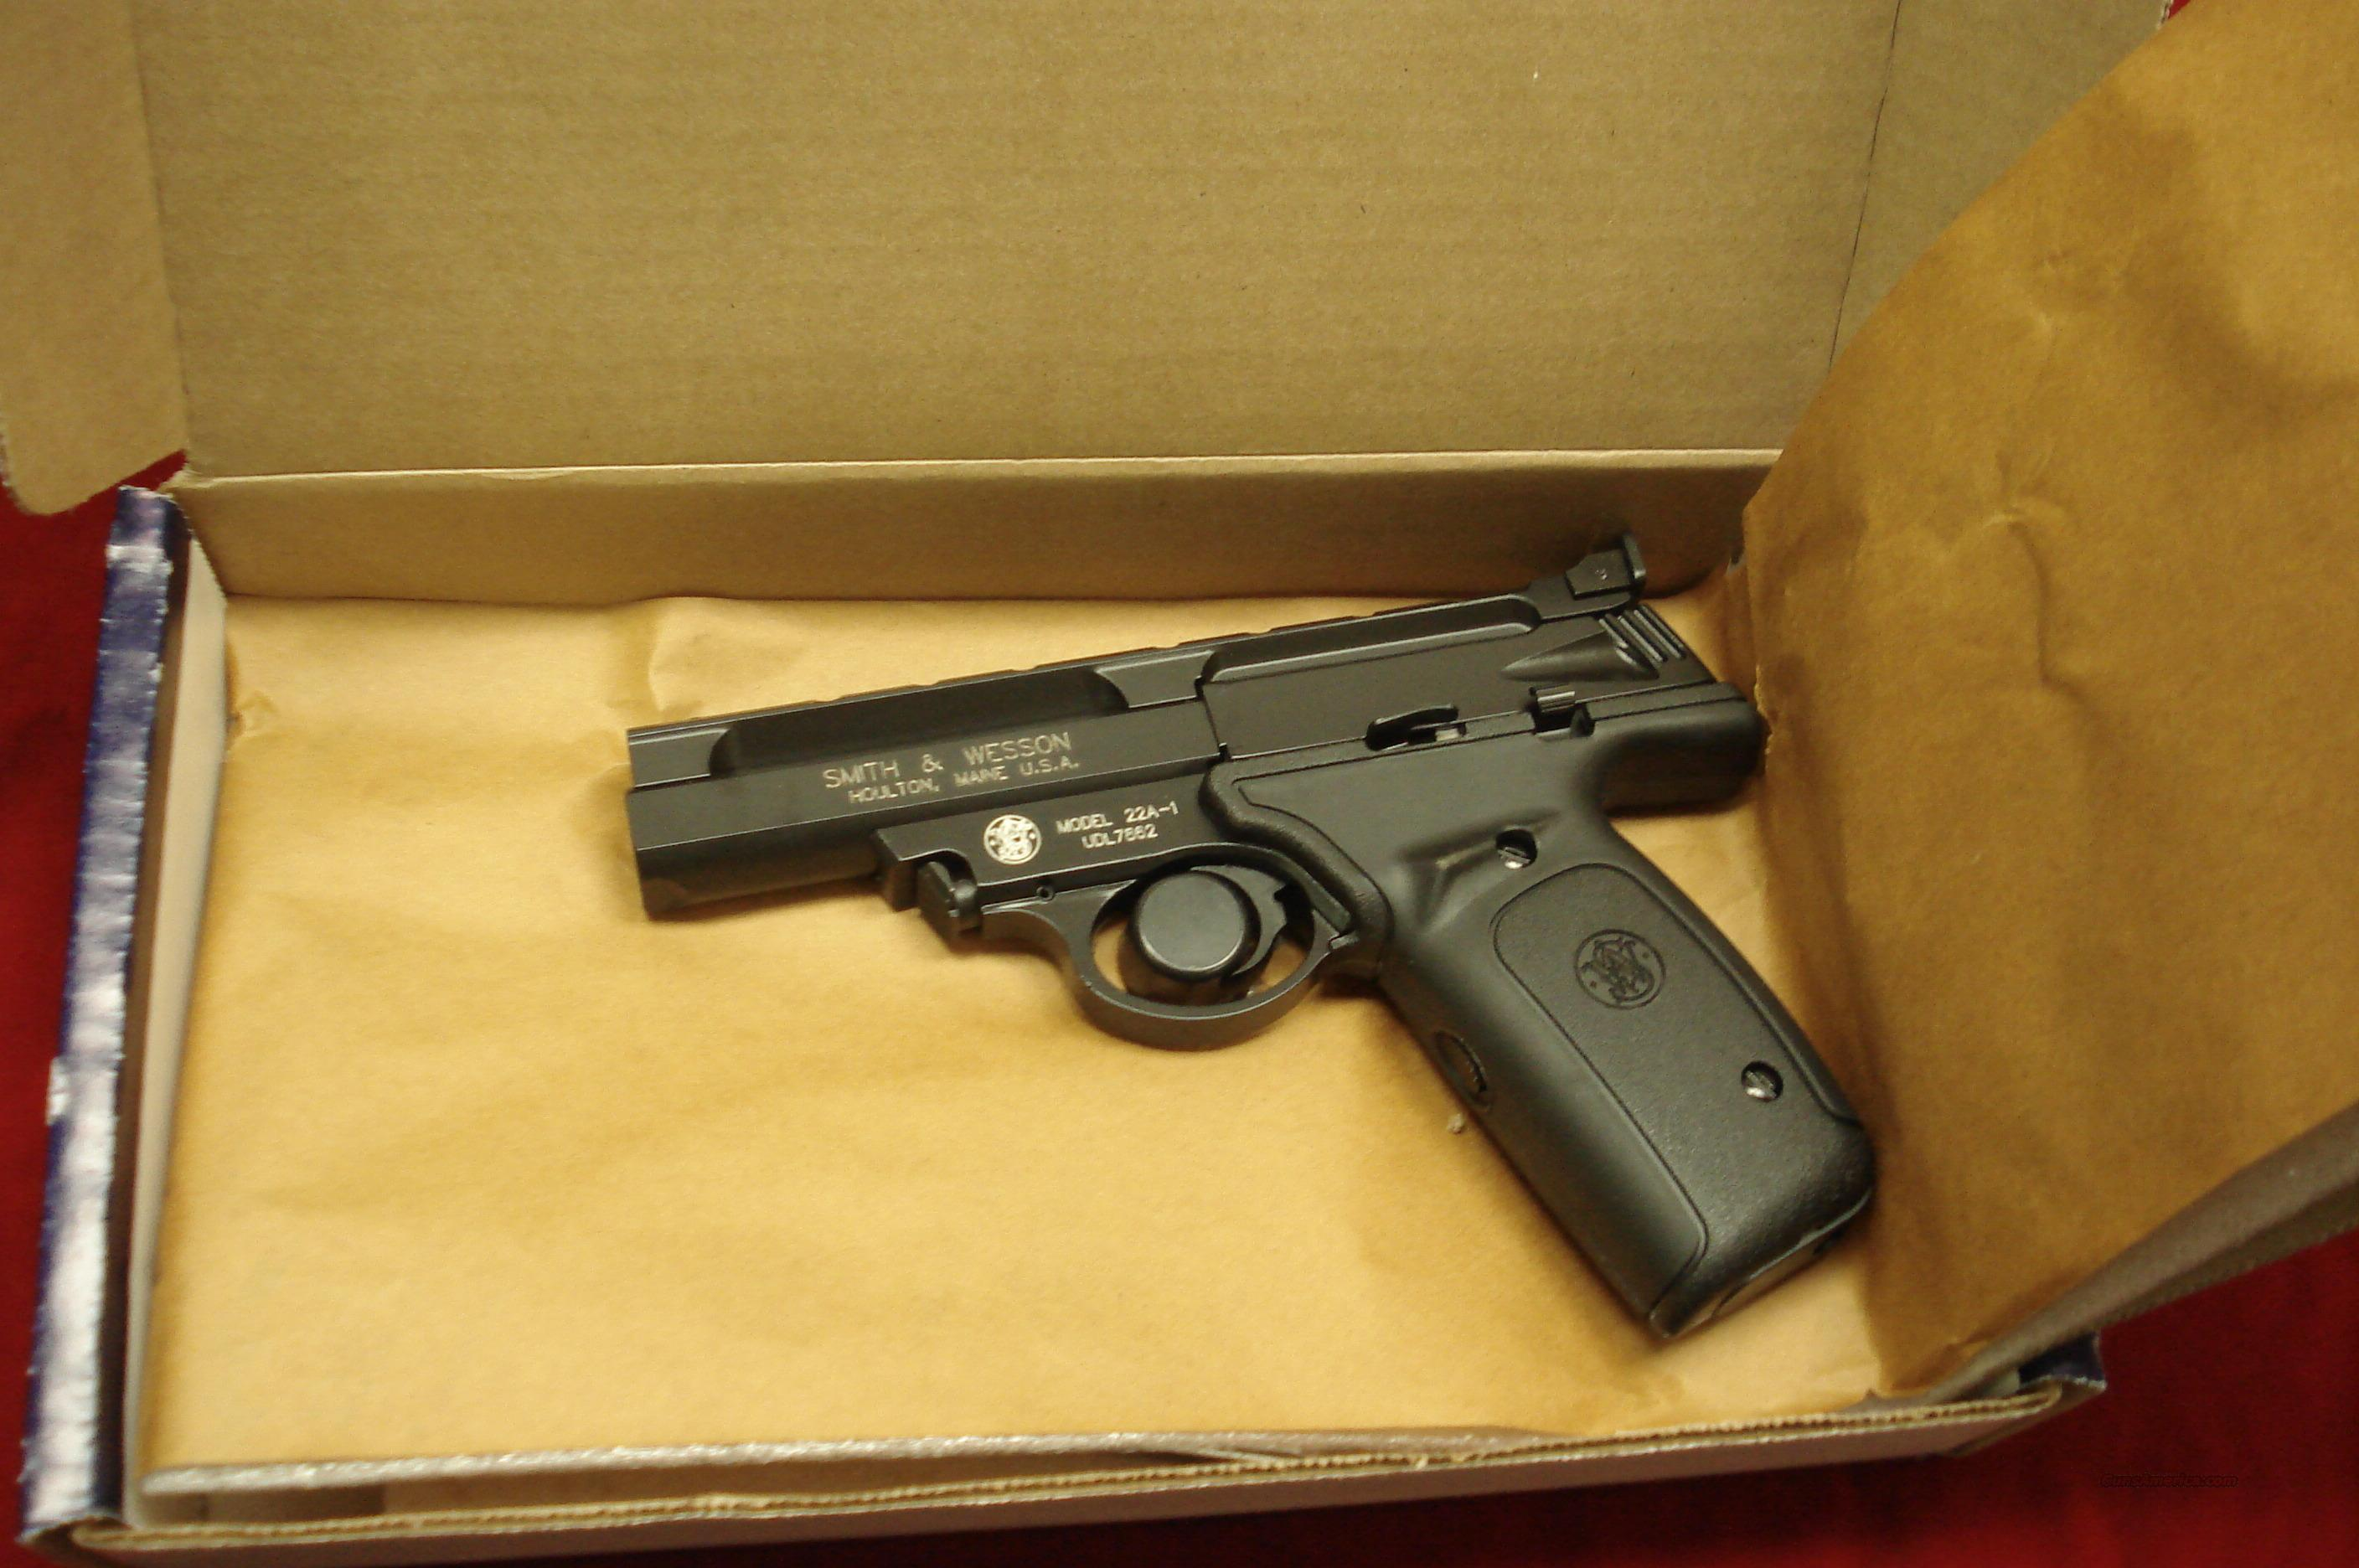 SMITH AND WESSON 22A 22LR. NEW  Guns > Pistols > Smith & Wesson Pistols - Autos > .22 Autos